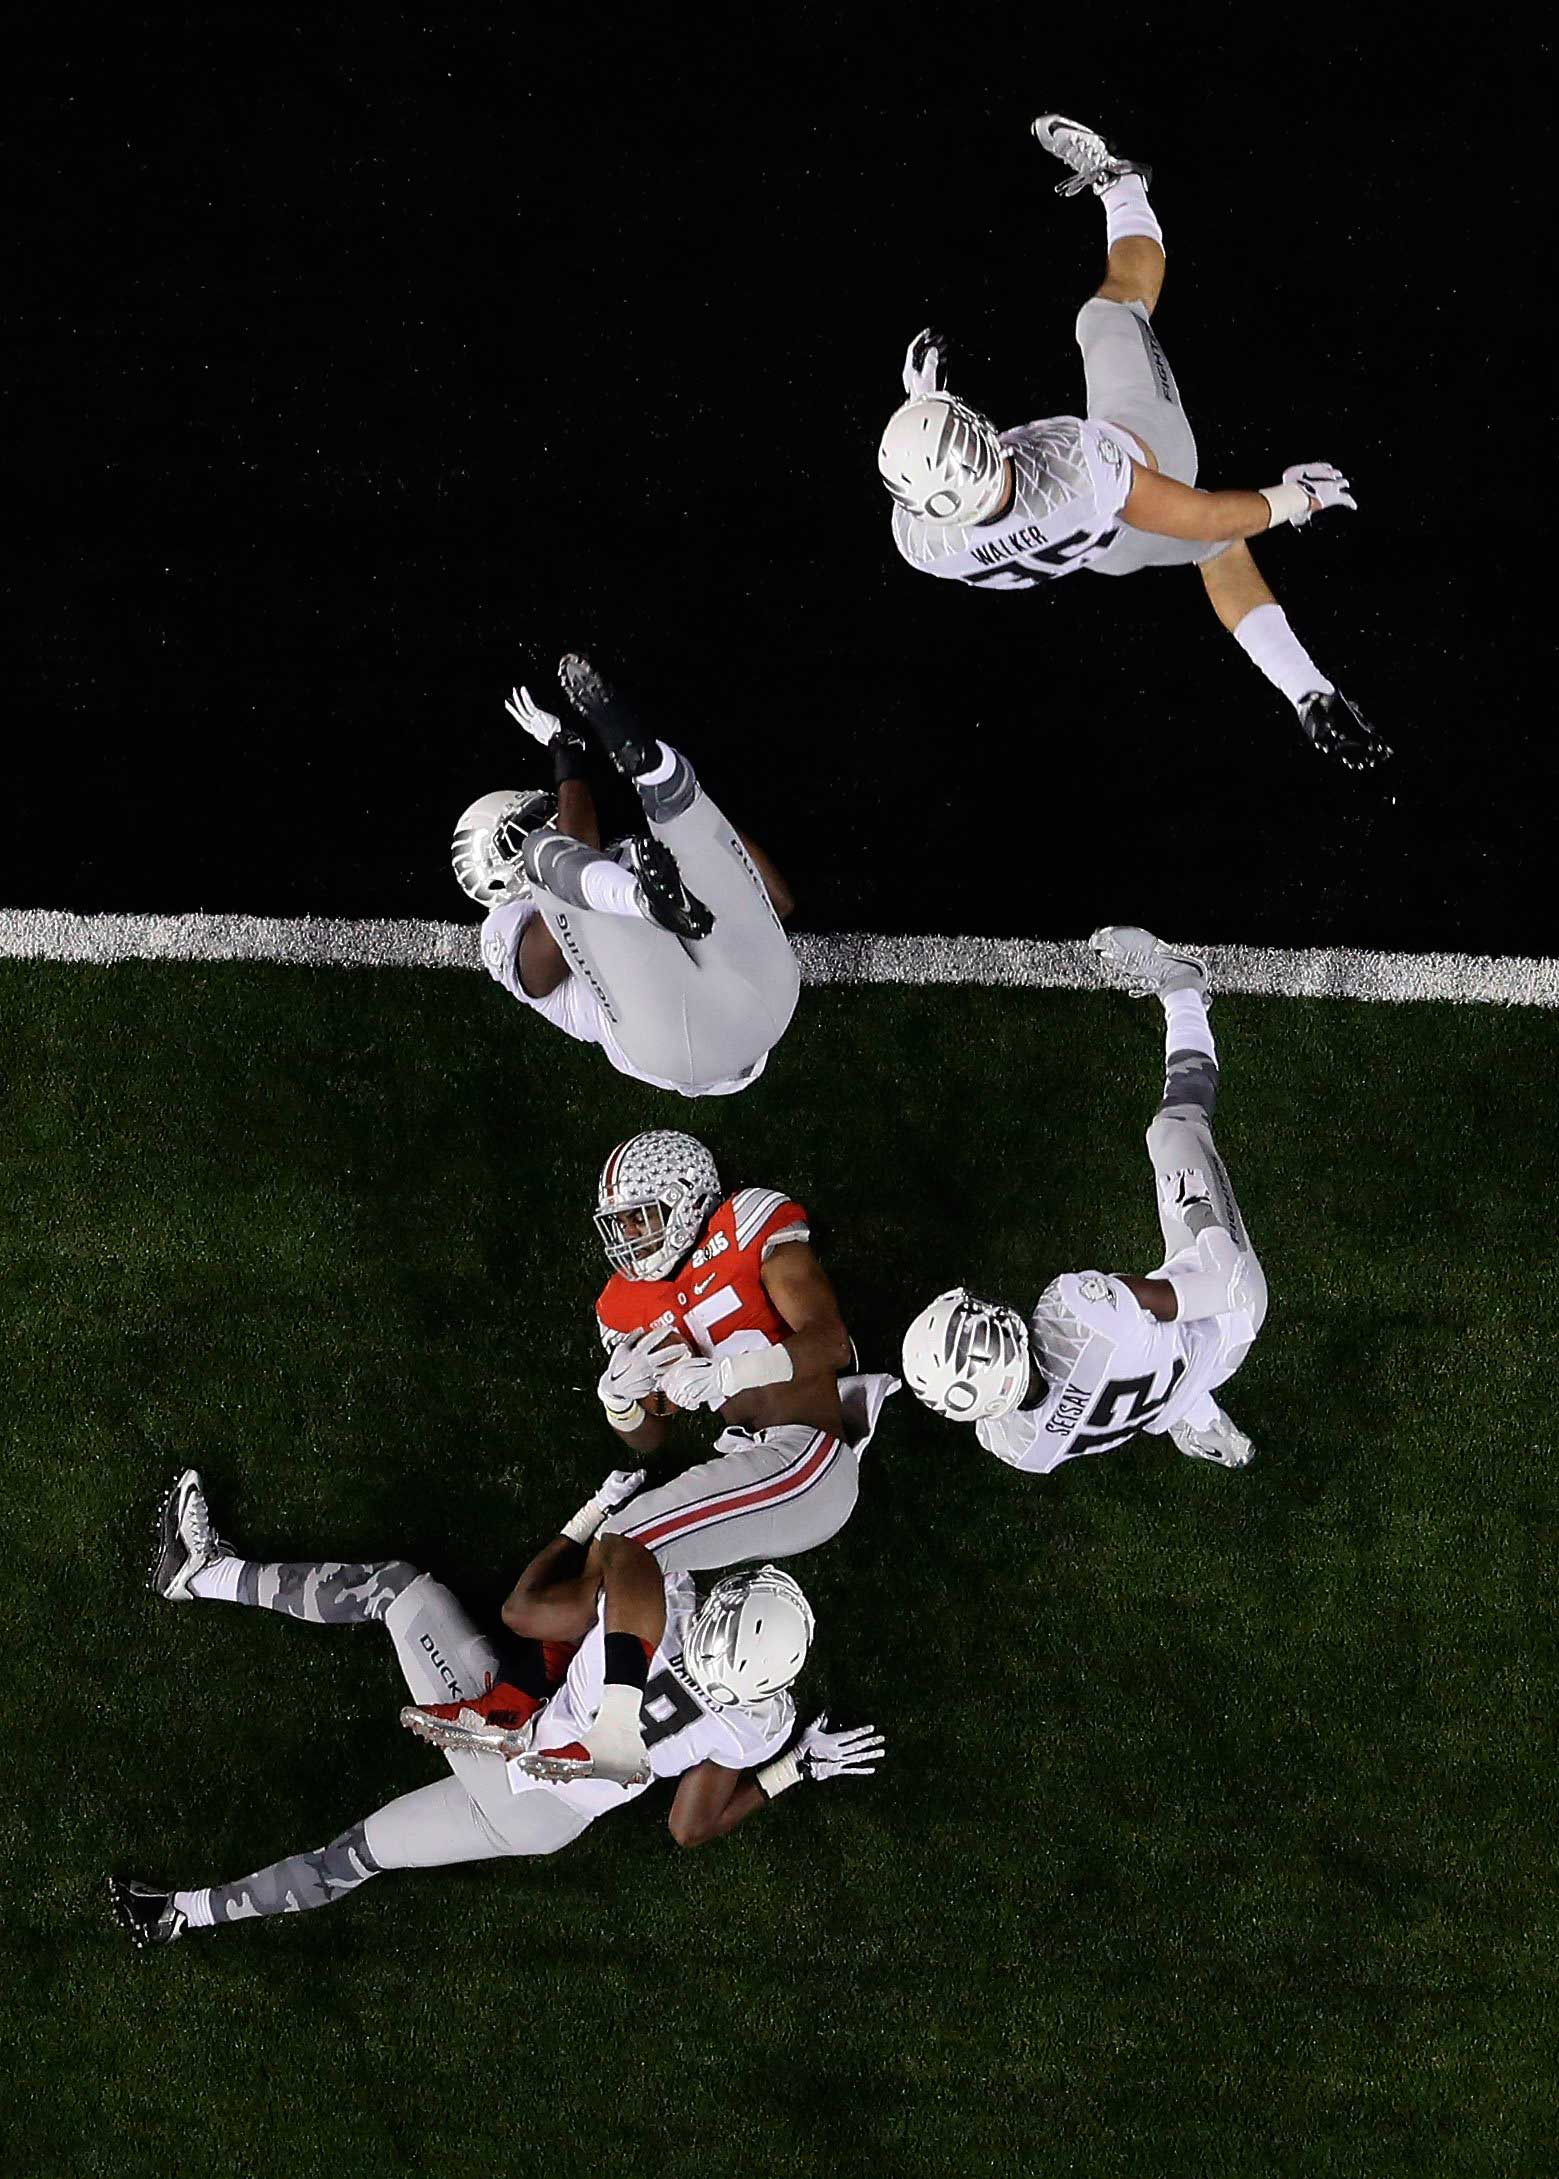 Ohio State's Ezekiel Elliott (15) is stopped short of the goal line during the NCAA college football playoff championship game against Oregon on Jan. 12, 2015, in Arlington, Texas.